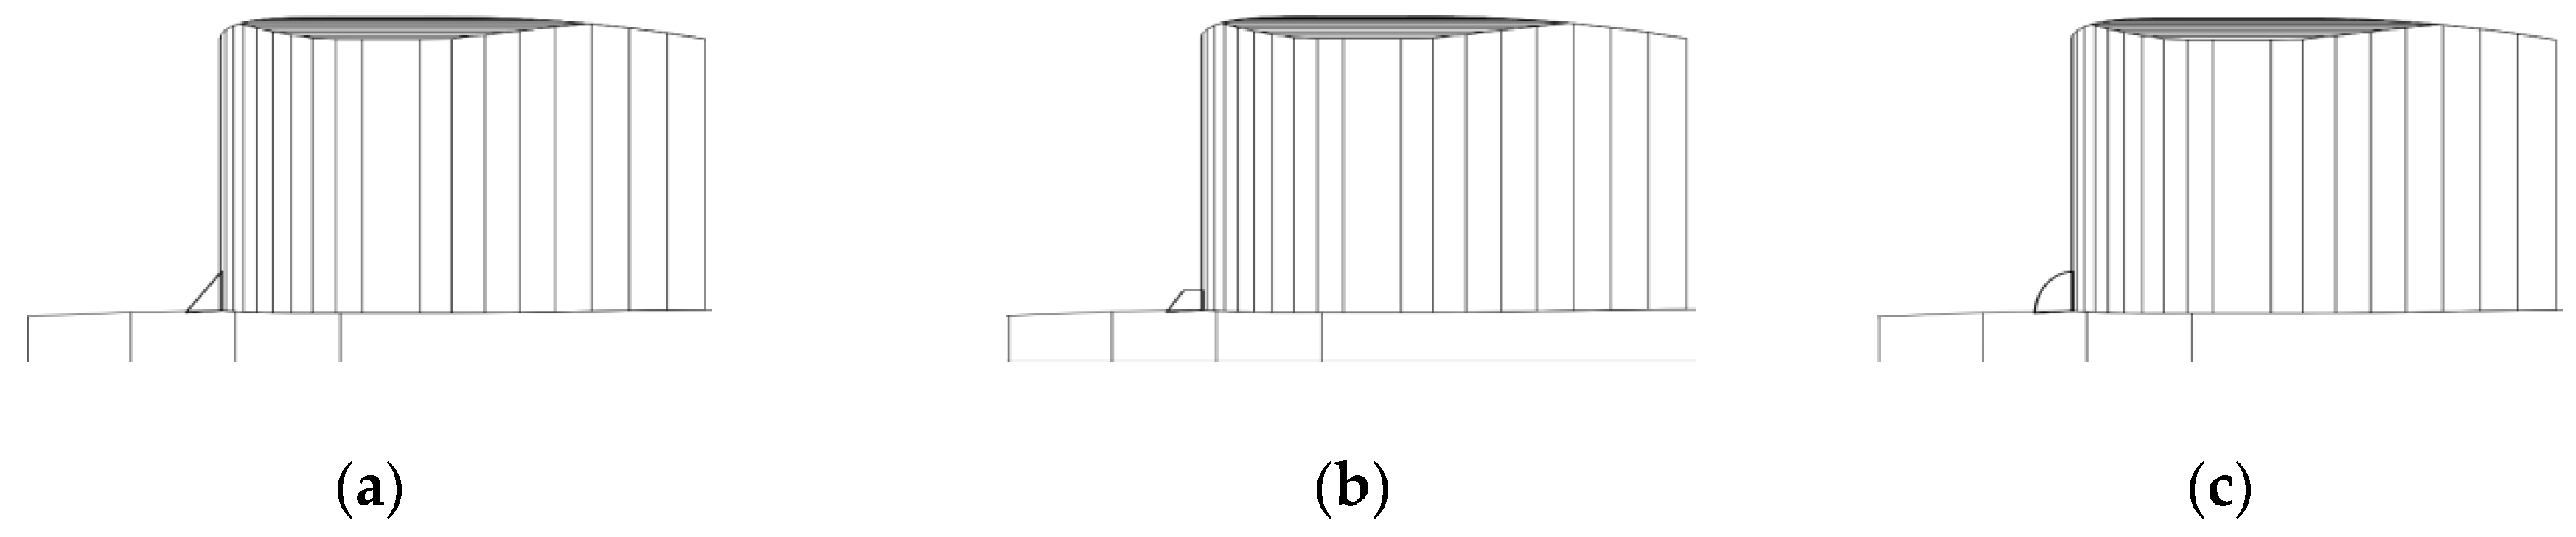 Horseshoe Pit Dimensions Diagram Additionally Horseshoe Pit Dimensions